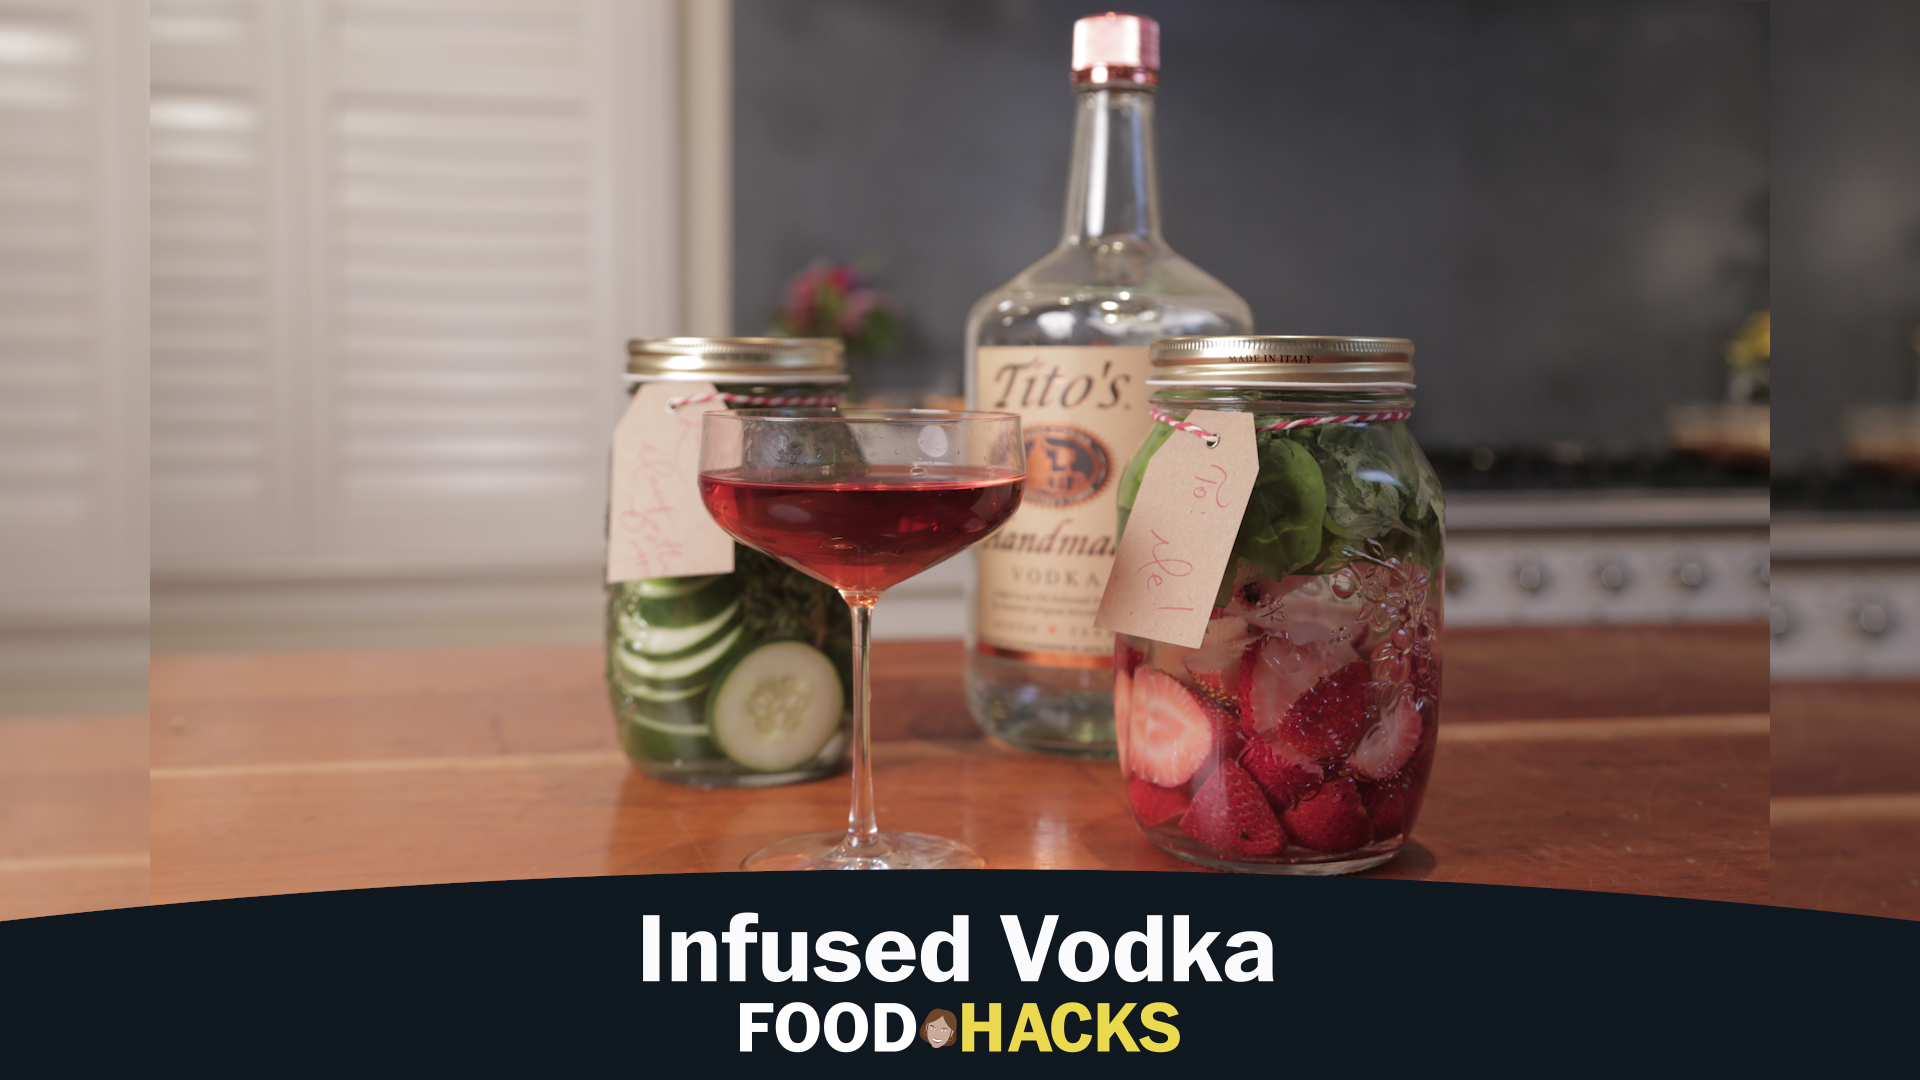 Homemade flavored vodka is a festive, easy and inexpensive holiday gift